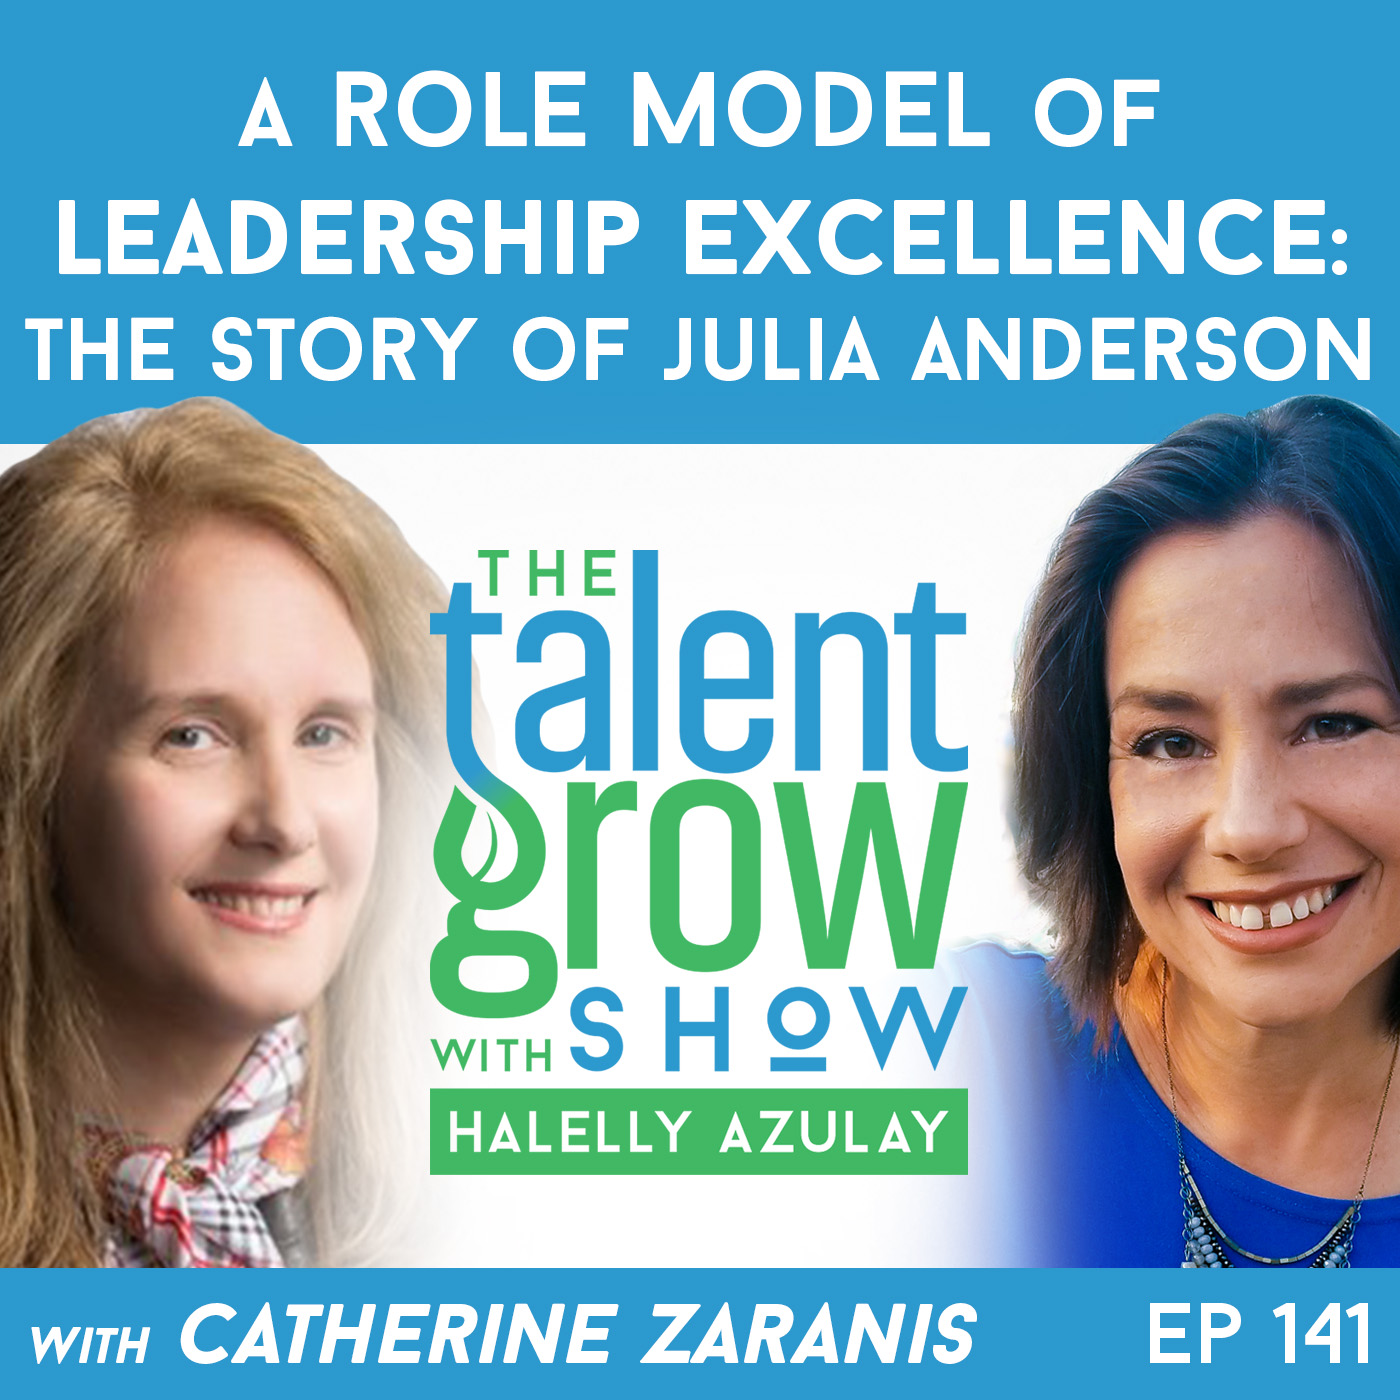 141: A Role Model of Leadership Excellence – the Story of Julia Anderson with Catherine Zaranis